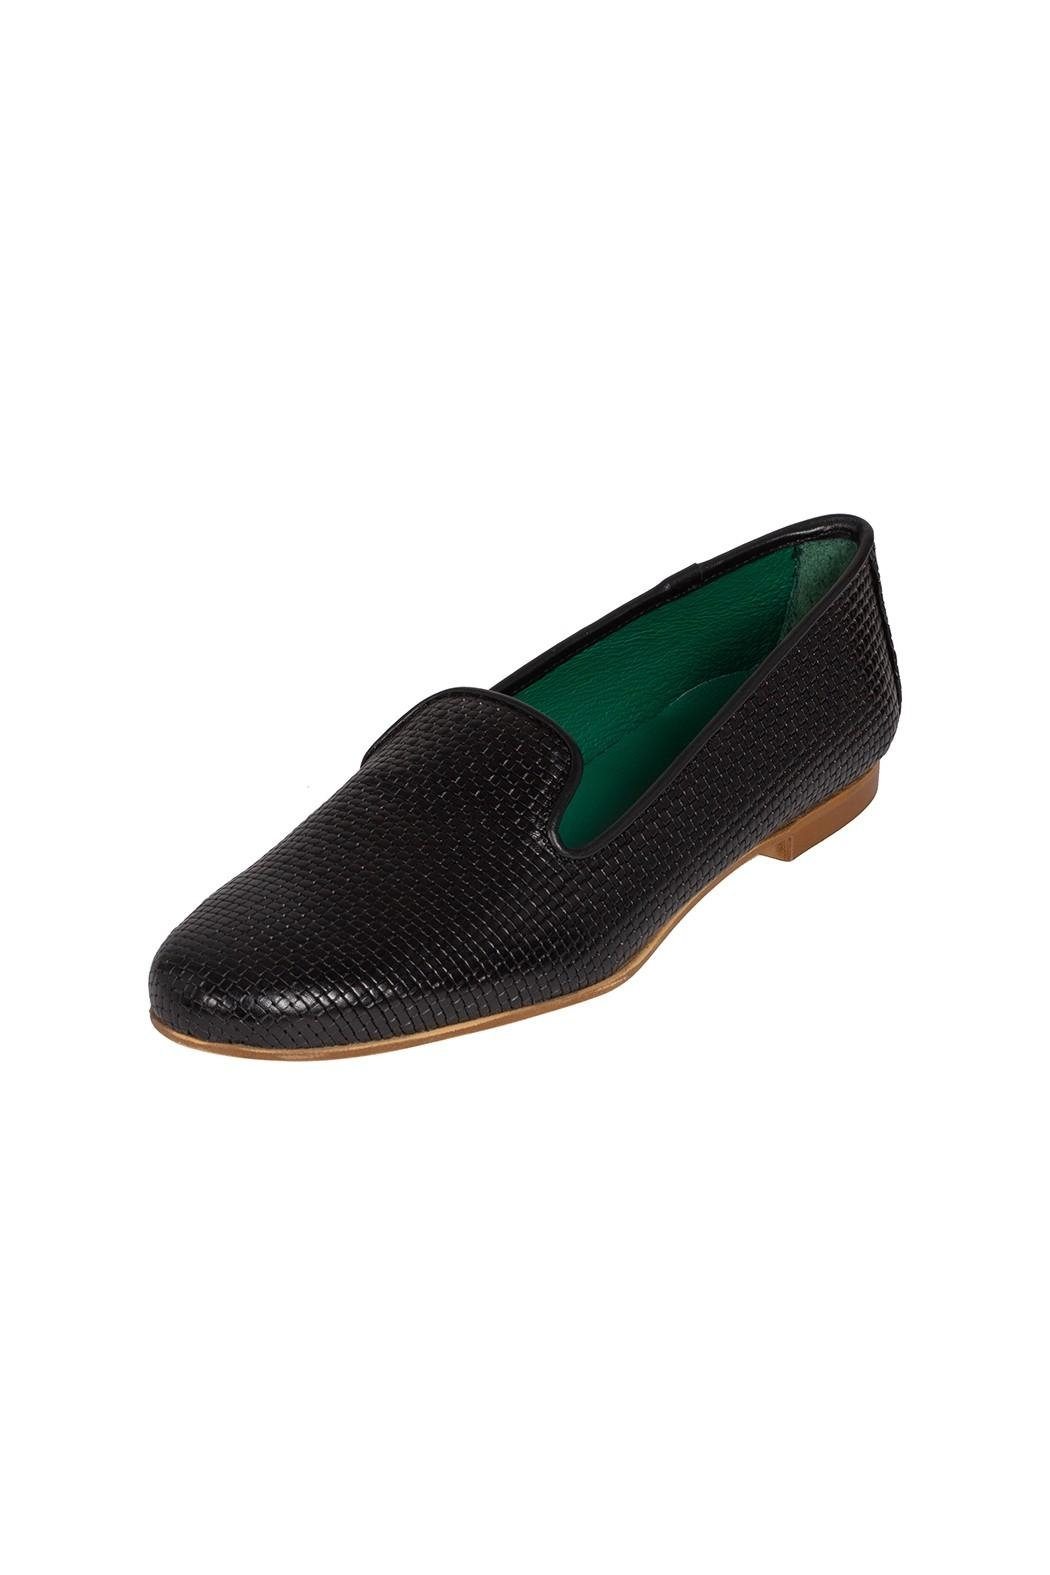 Pascucci Black Leather Smoking-Slipper - Front Full Image